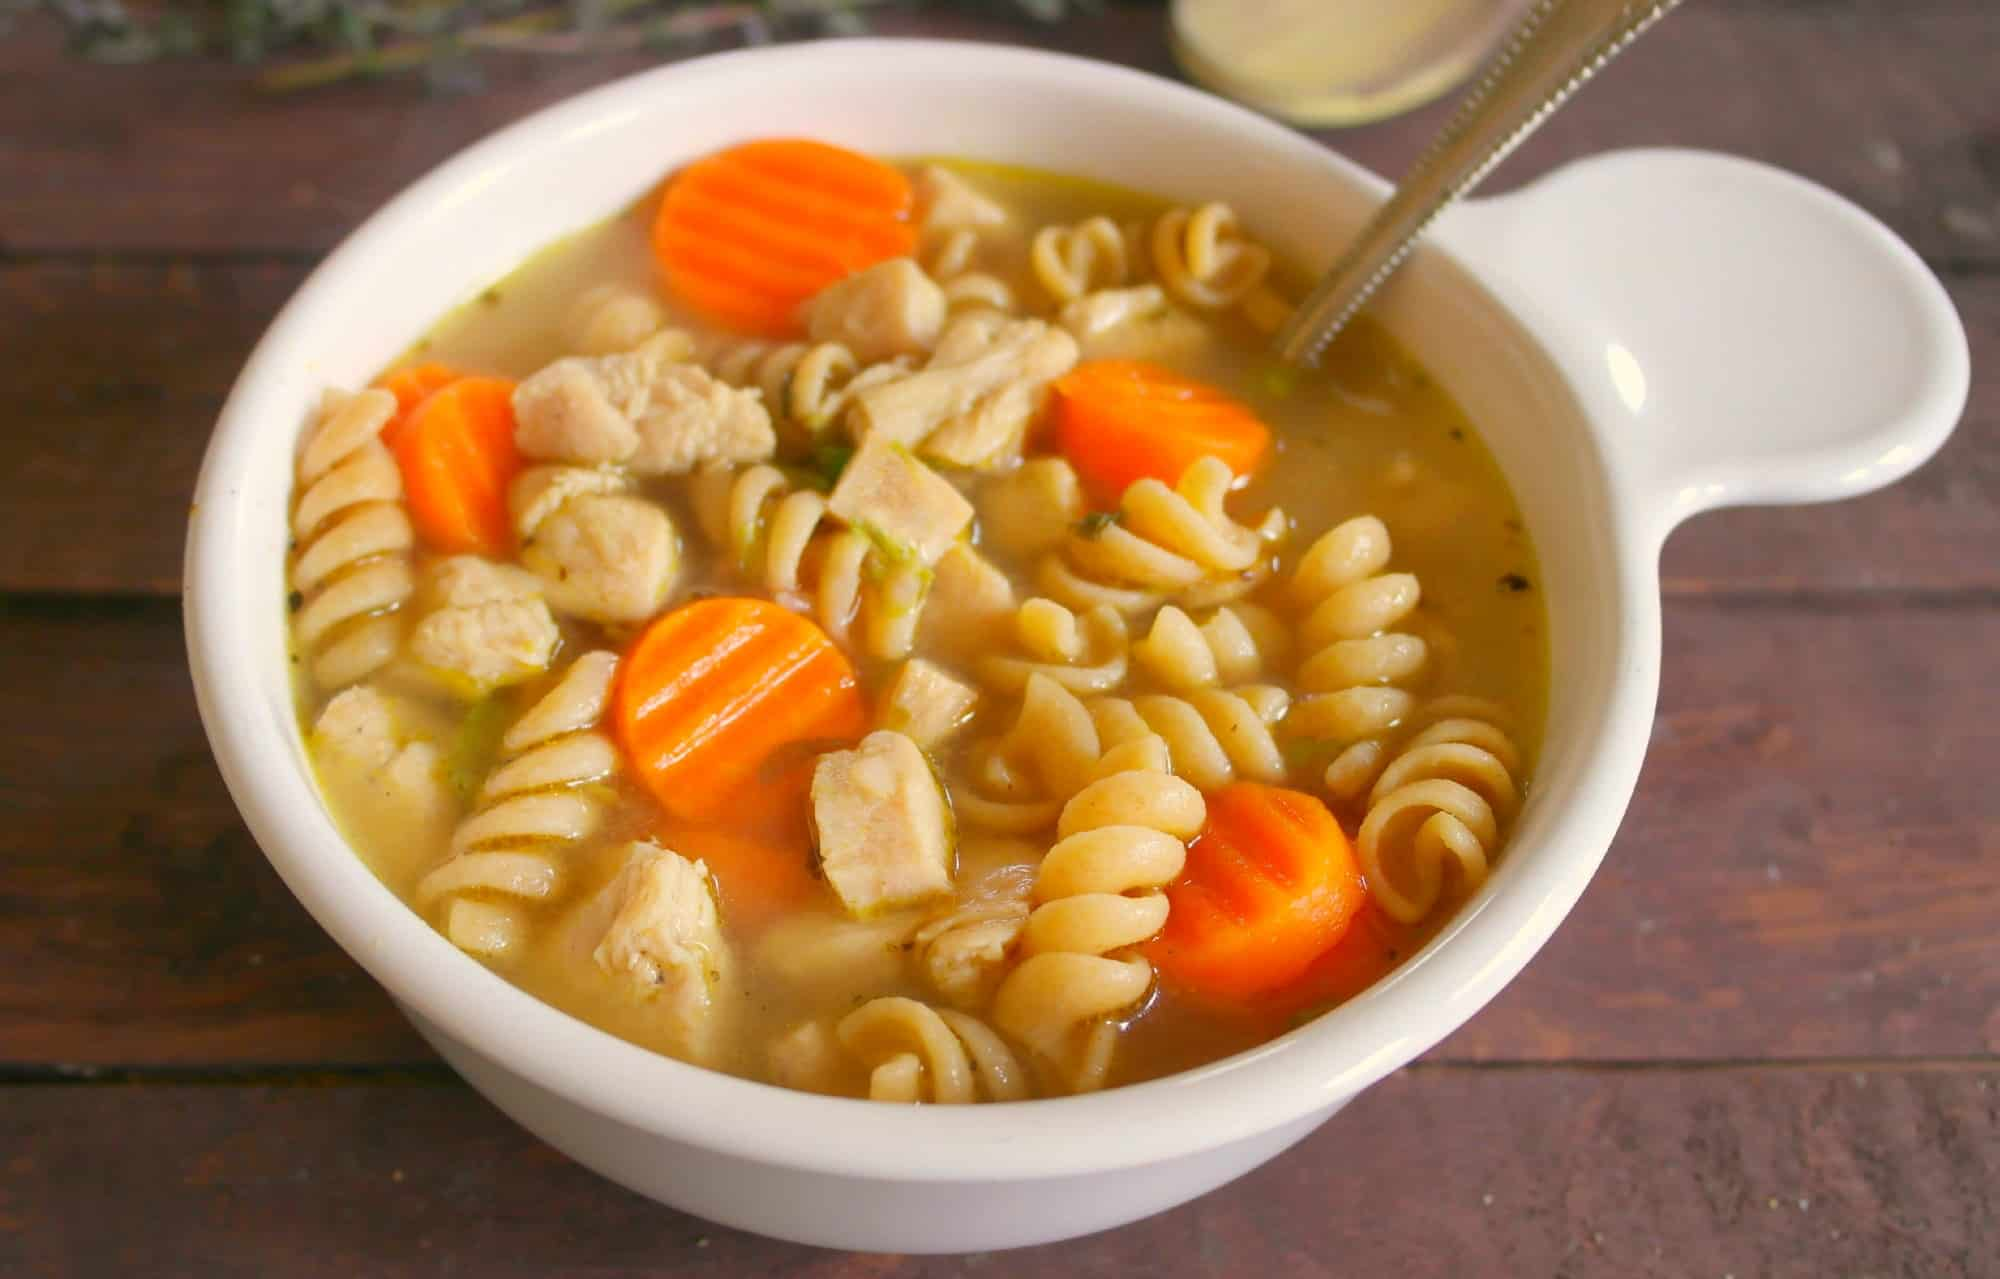 Home Cooked Comfort Taste In This 15 Minute Chicken Noodle Soup Teaspoon Of Goodness